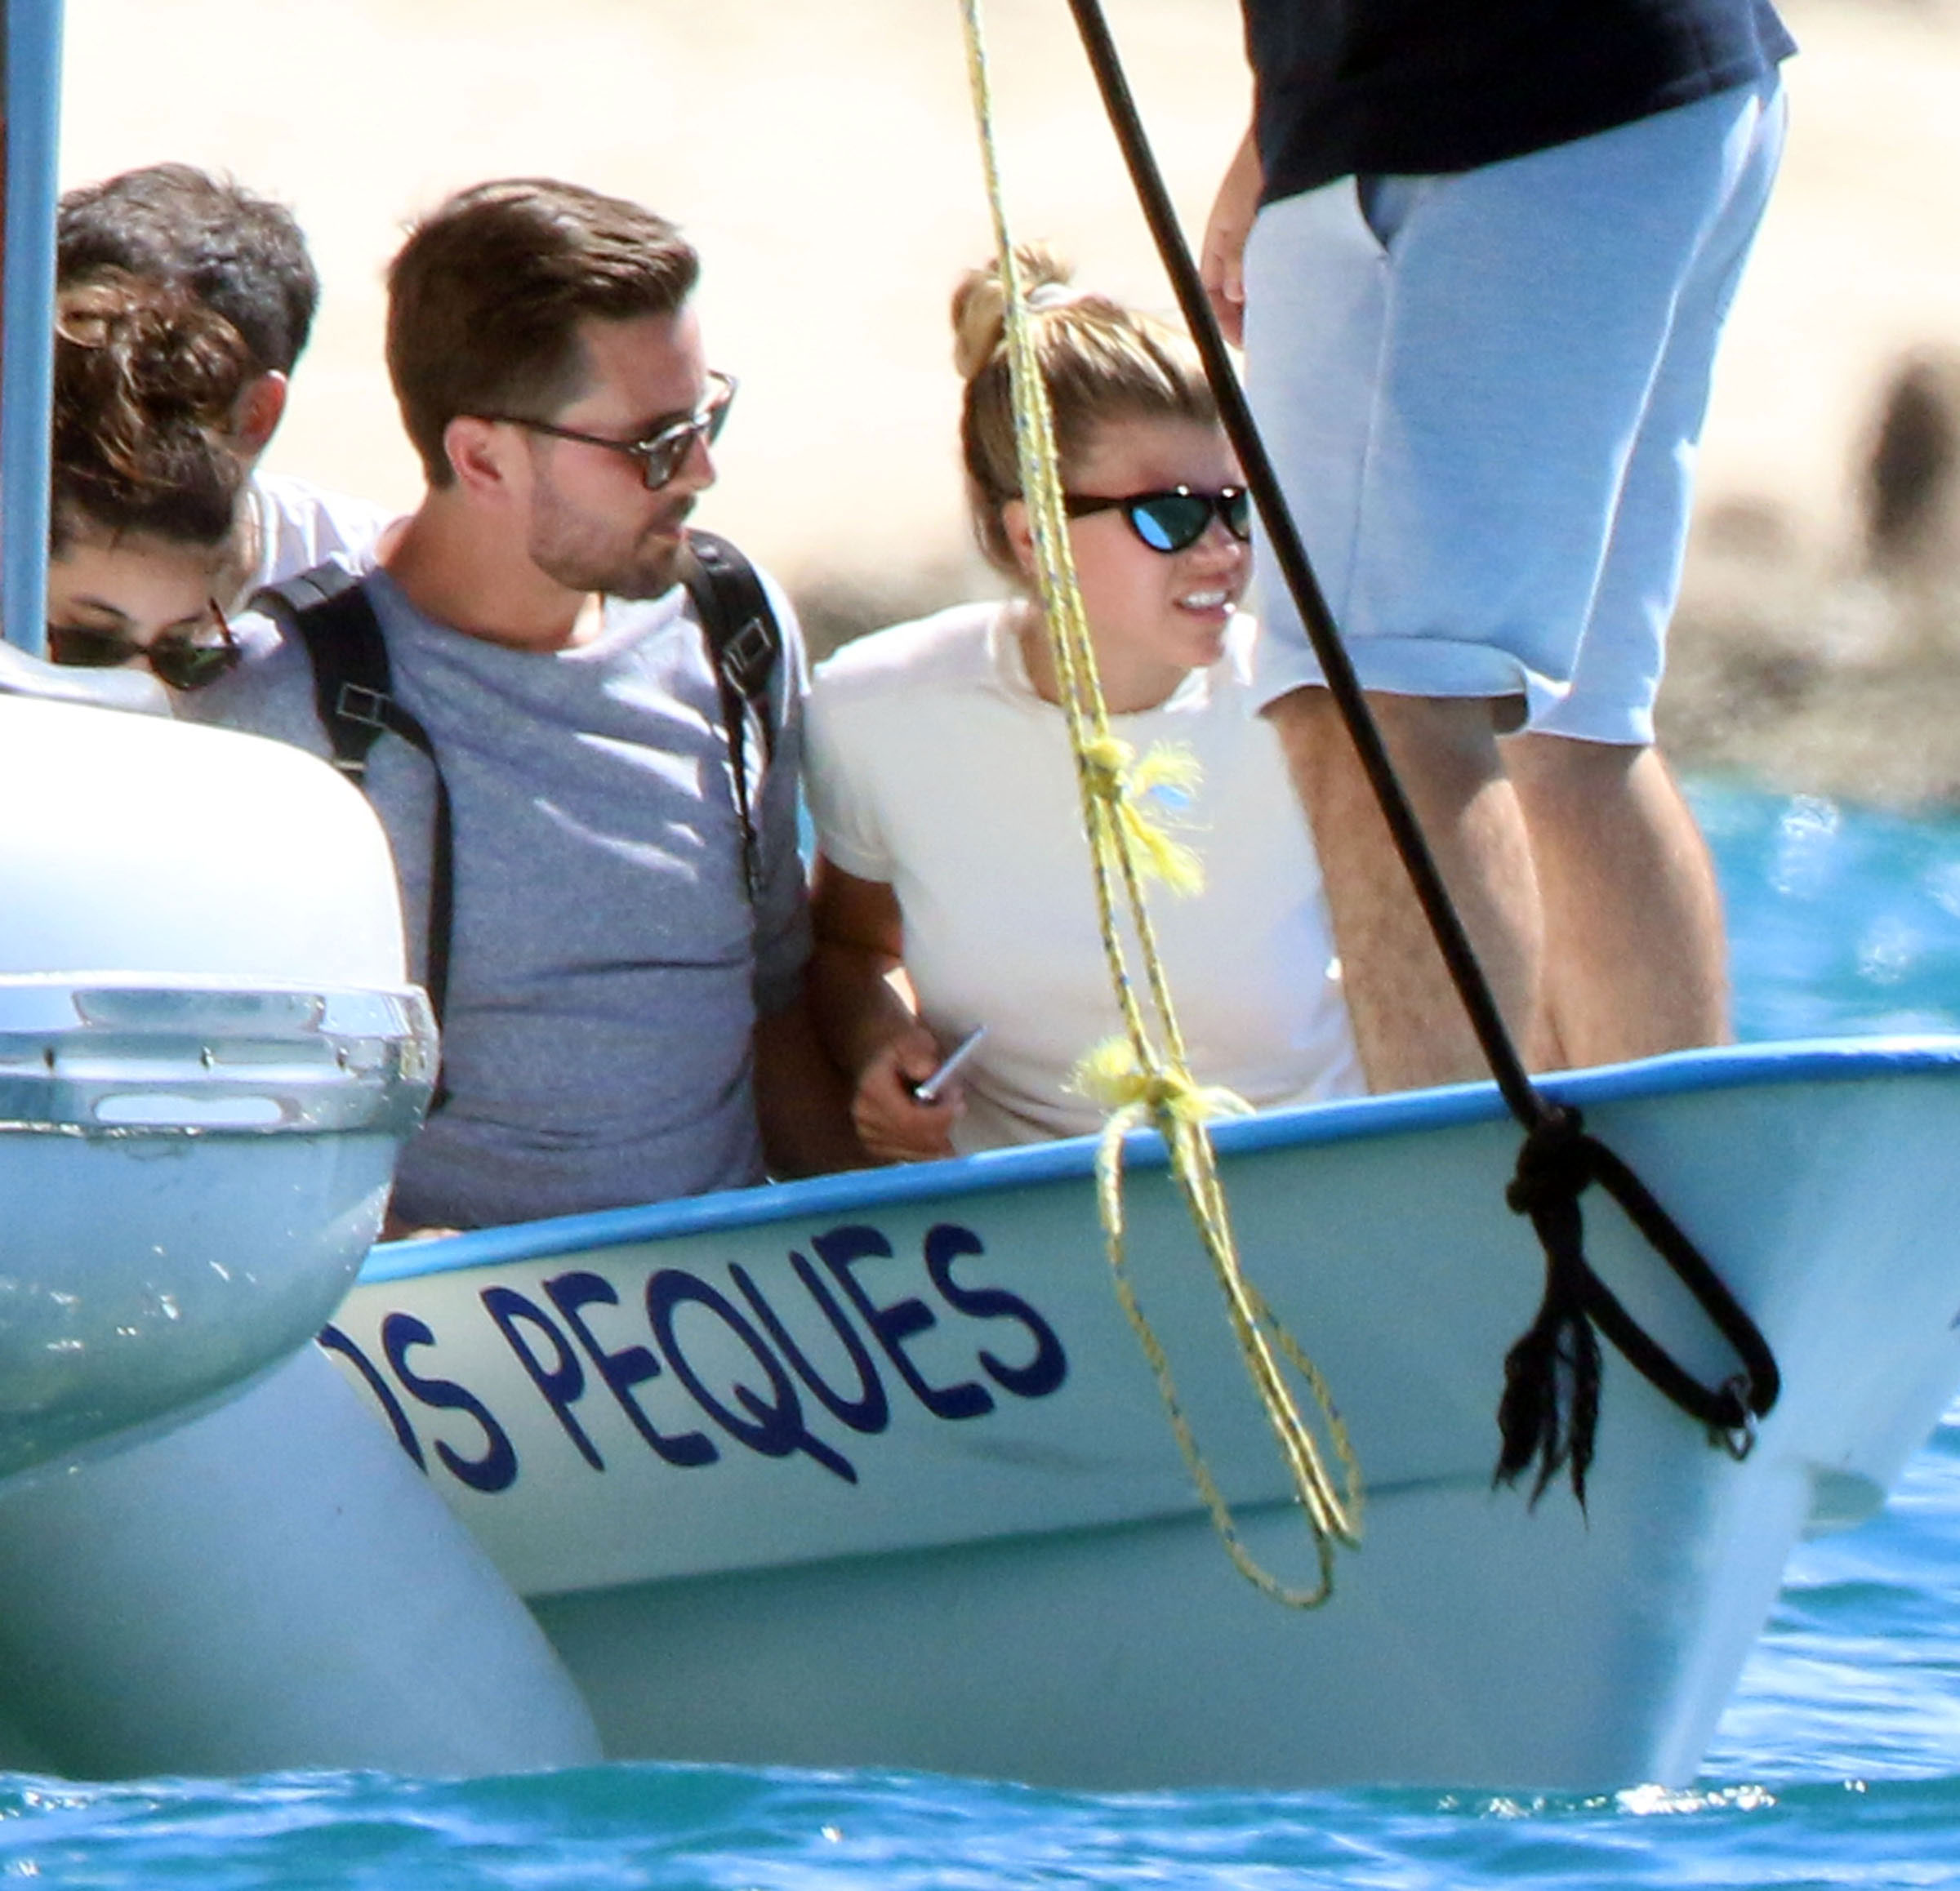 Scott Disick Sofia Richie vacation in Mexico - Disick and Richie stayed close together during their day out at sea.